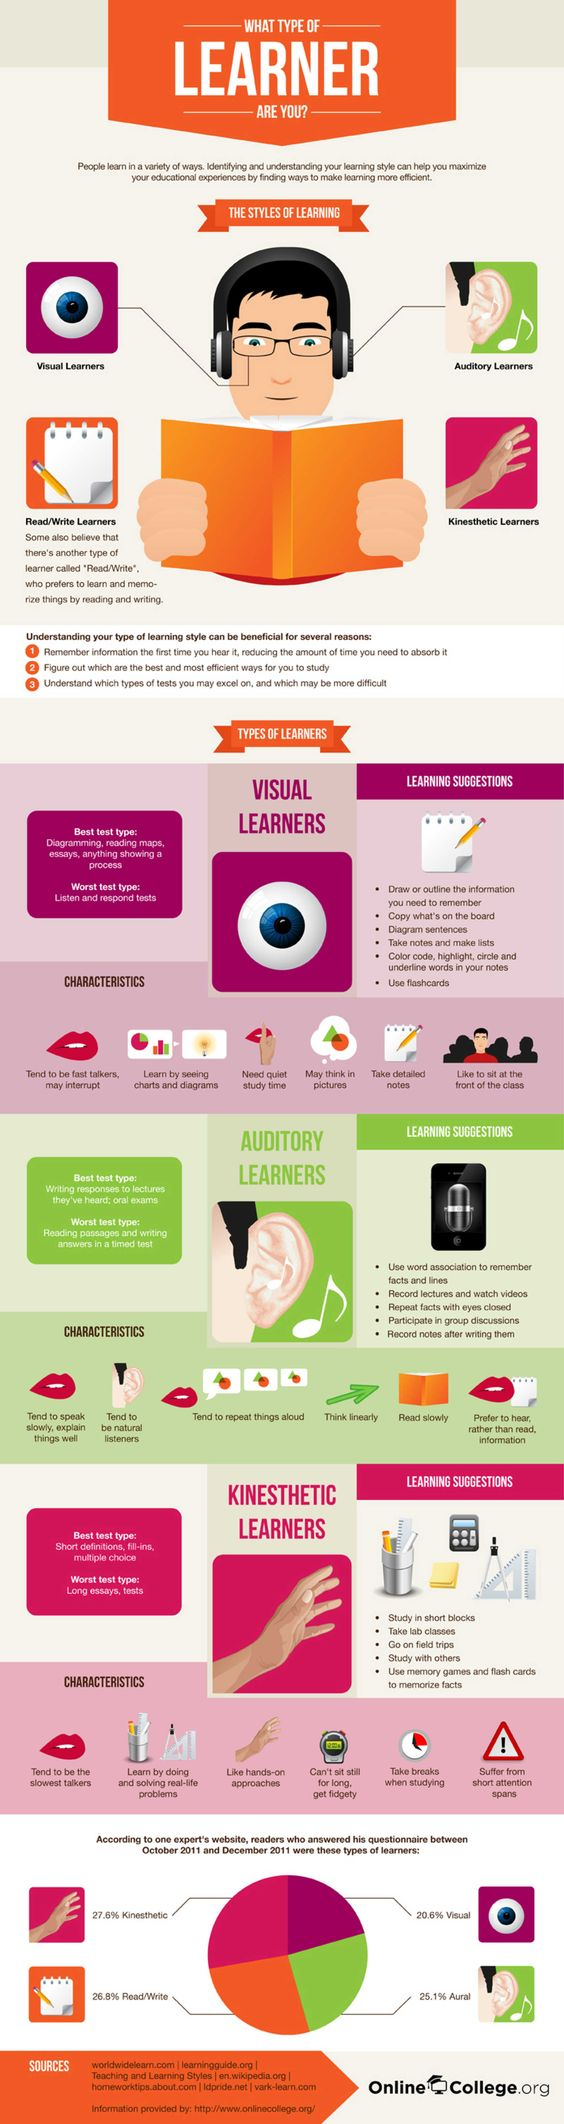 What Type of Learner Are You?.: